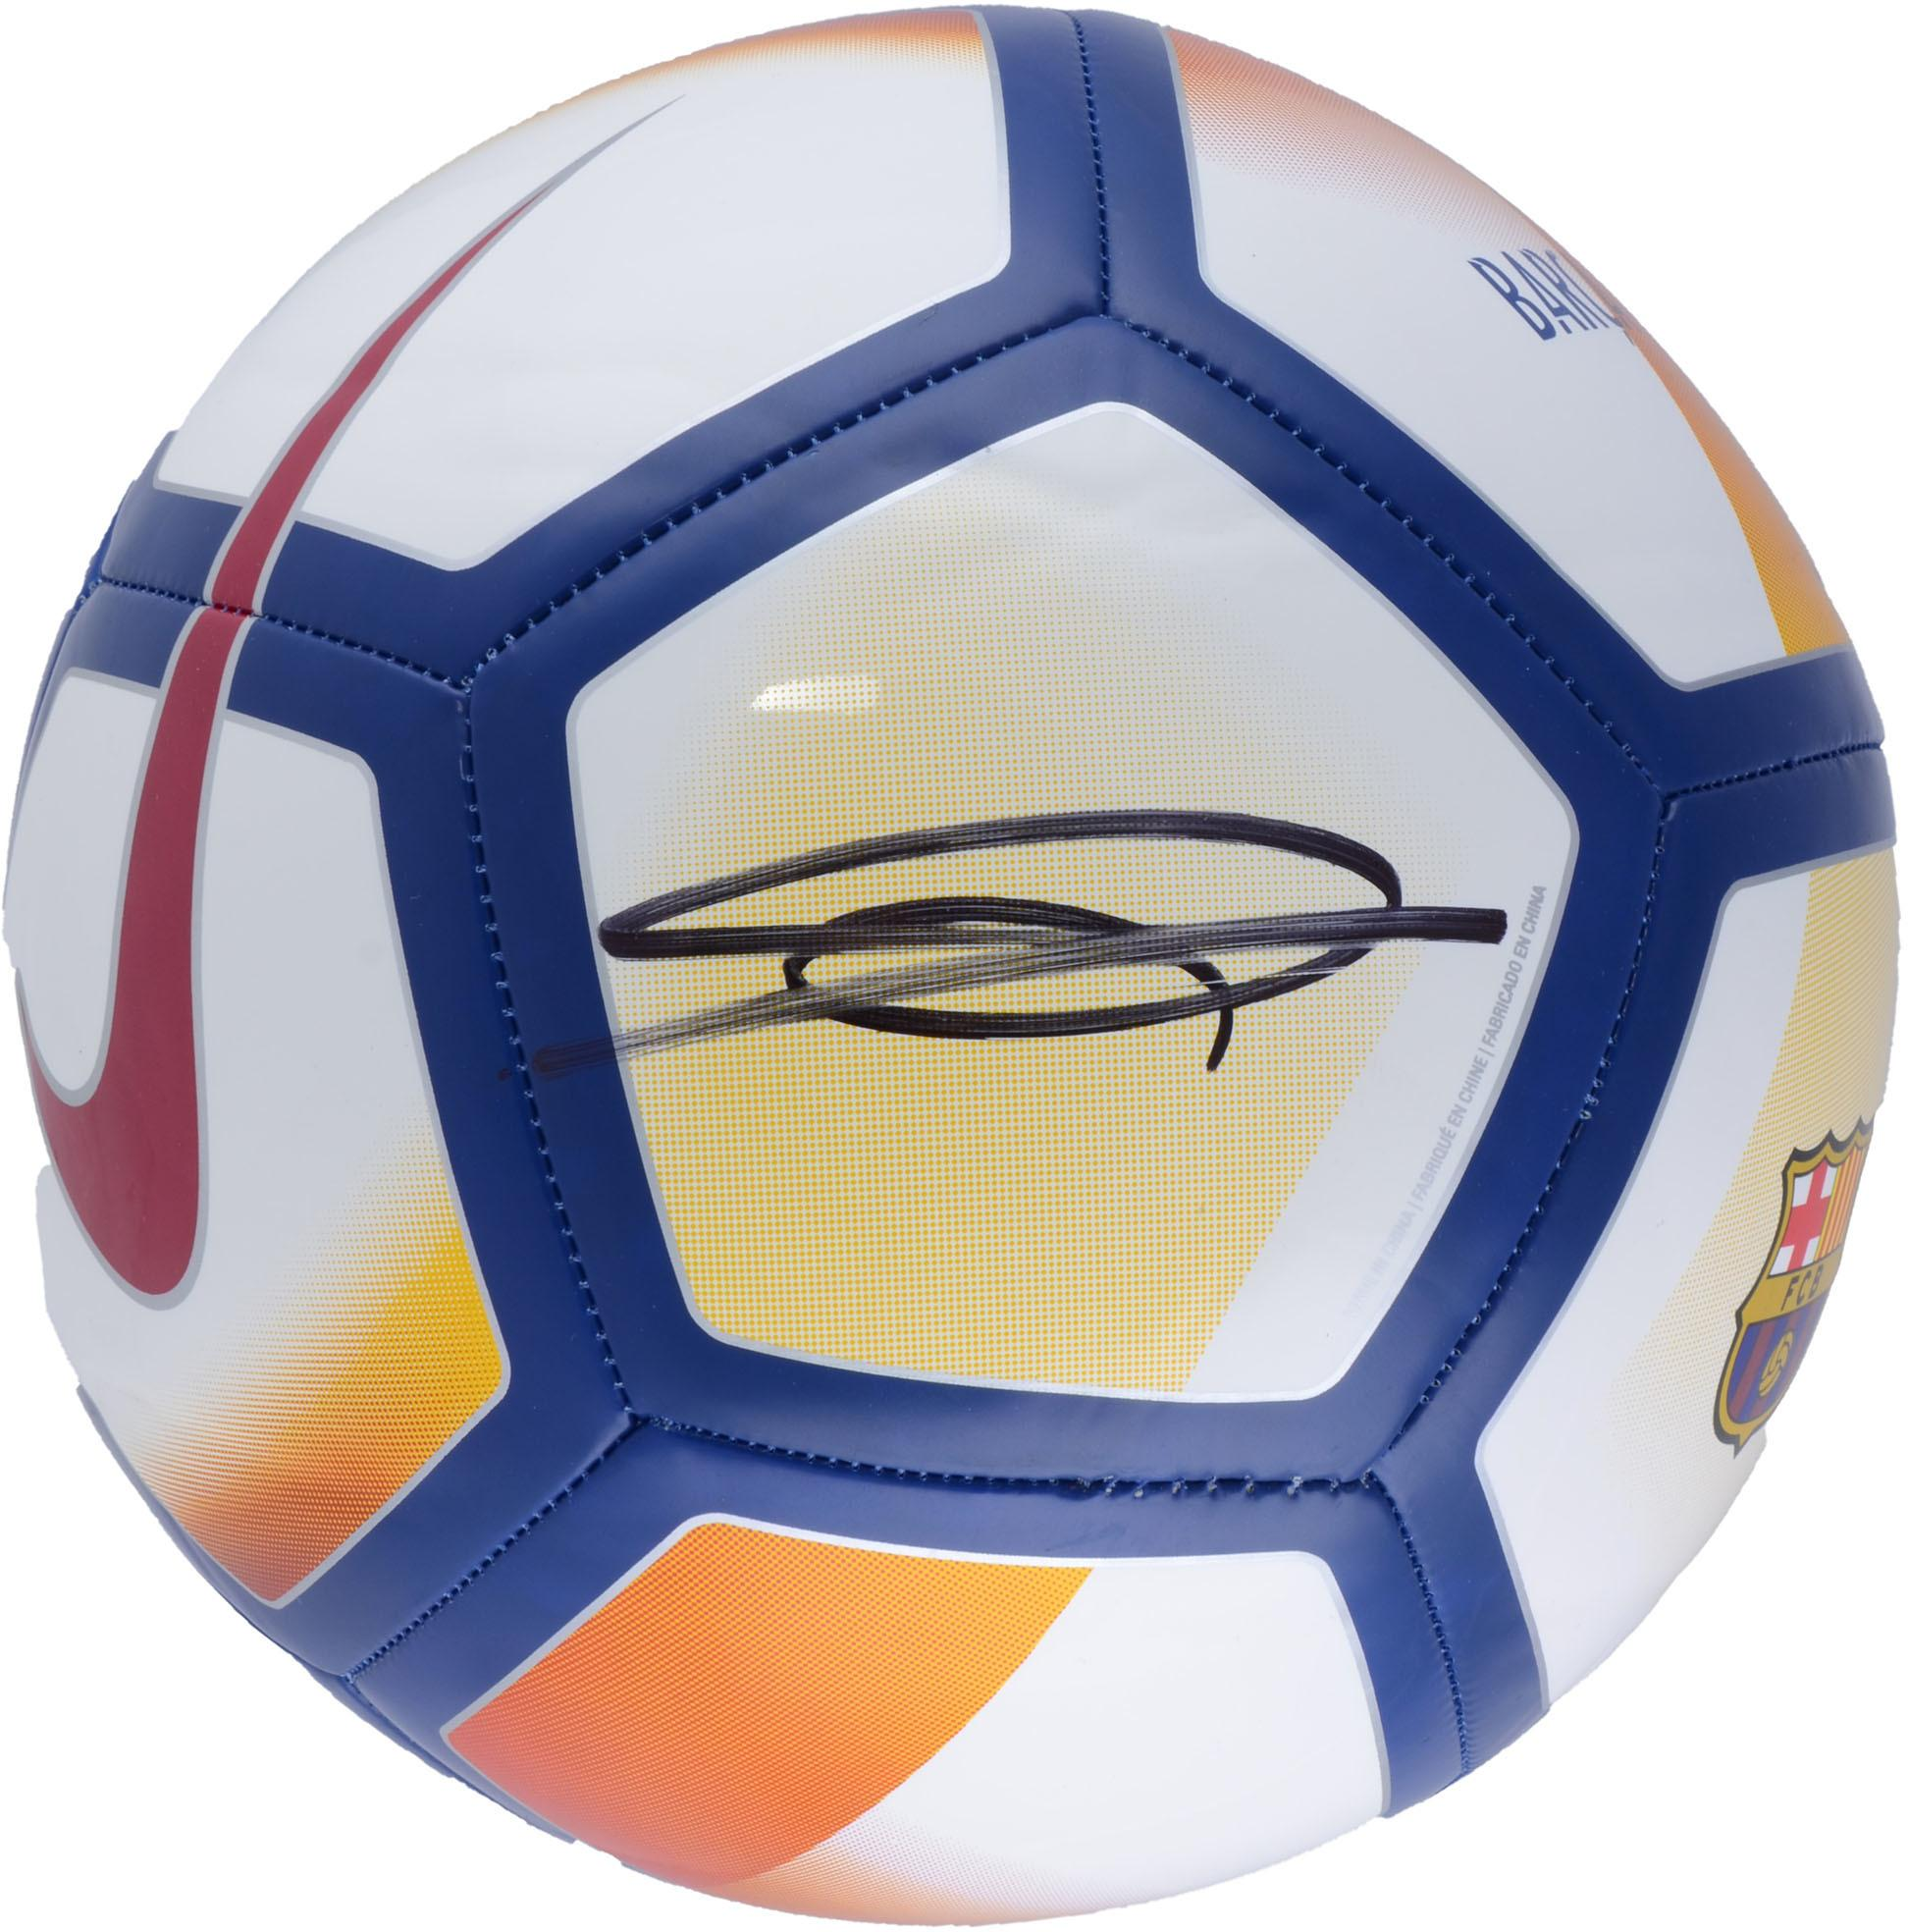 Ousmane Dembele Barcelona Autographed Barca Soccer Ball - Fanatics Authentic Certified